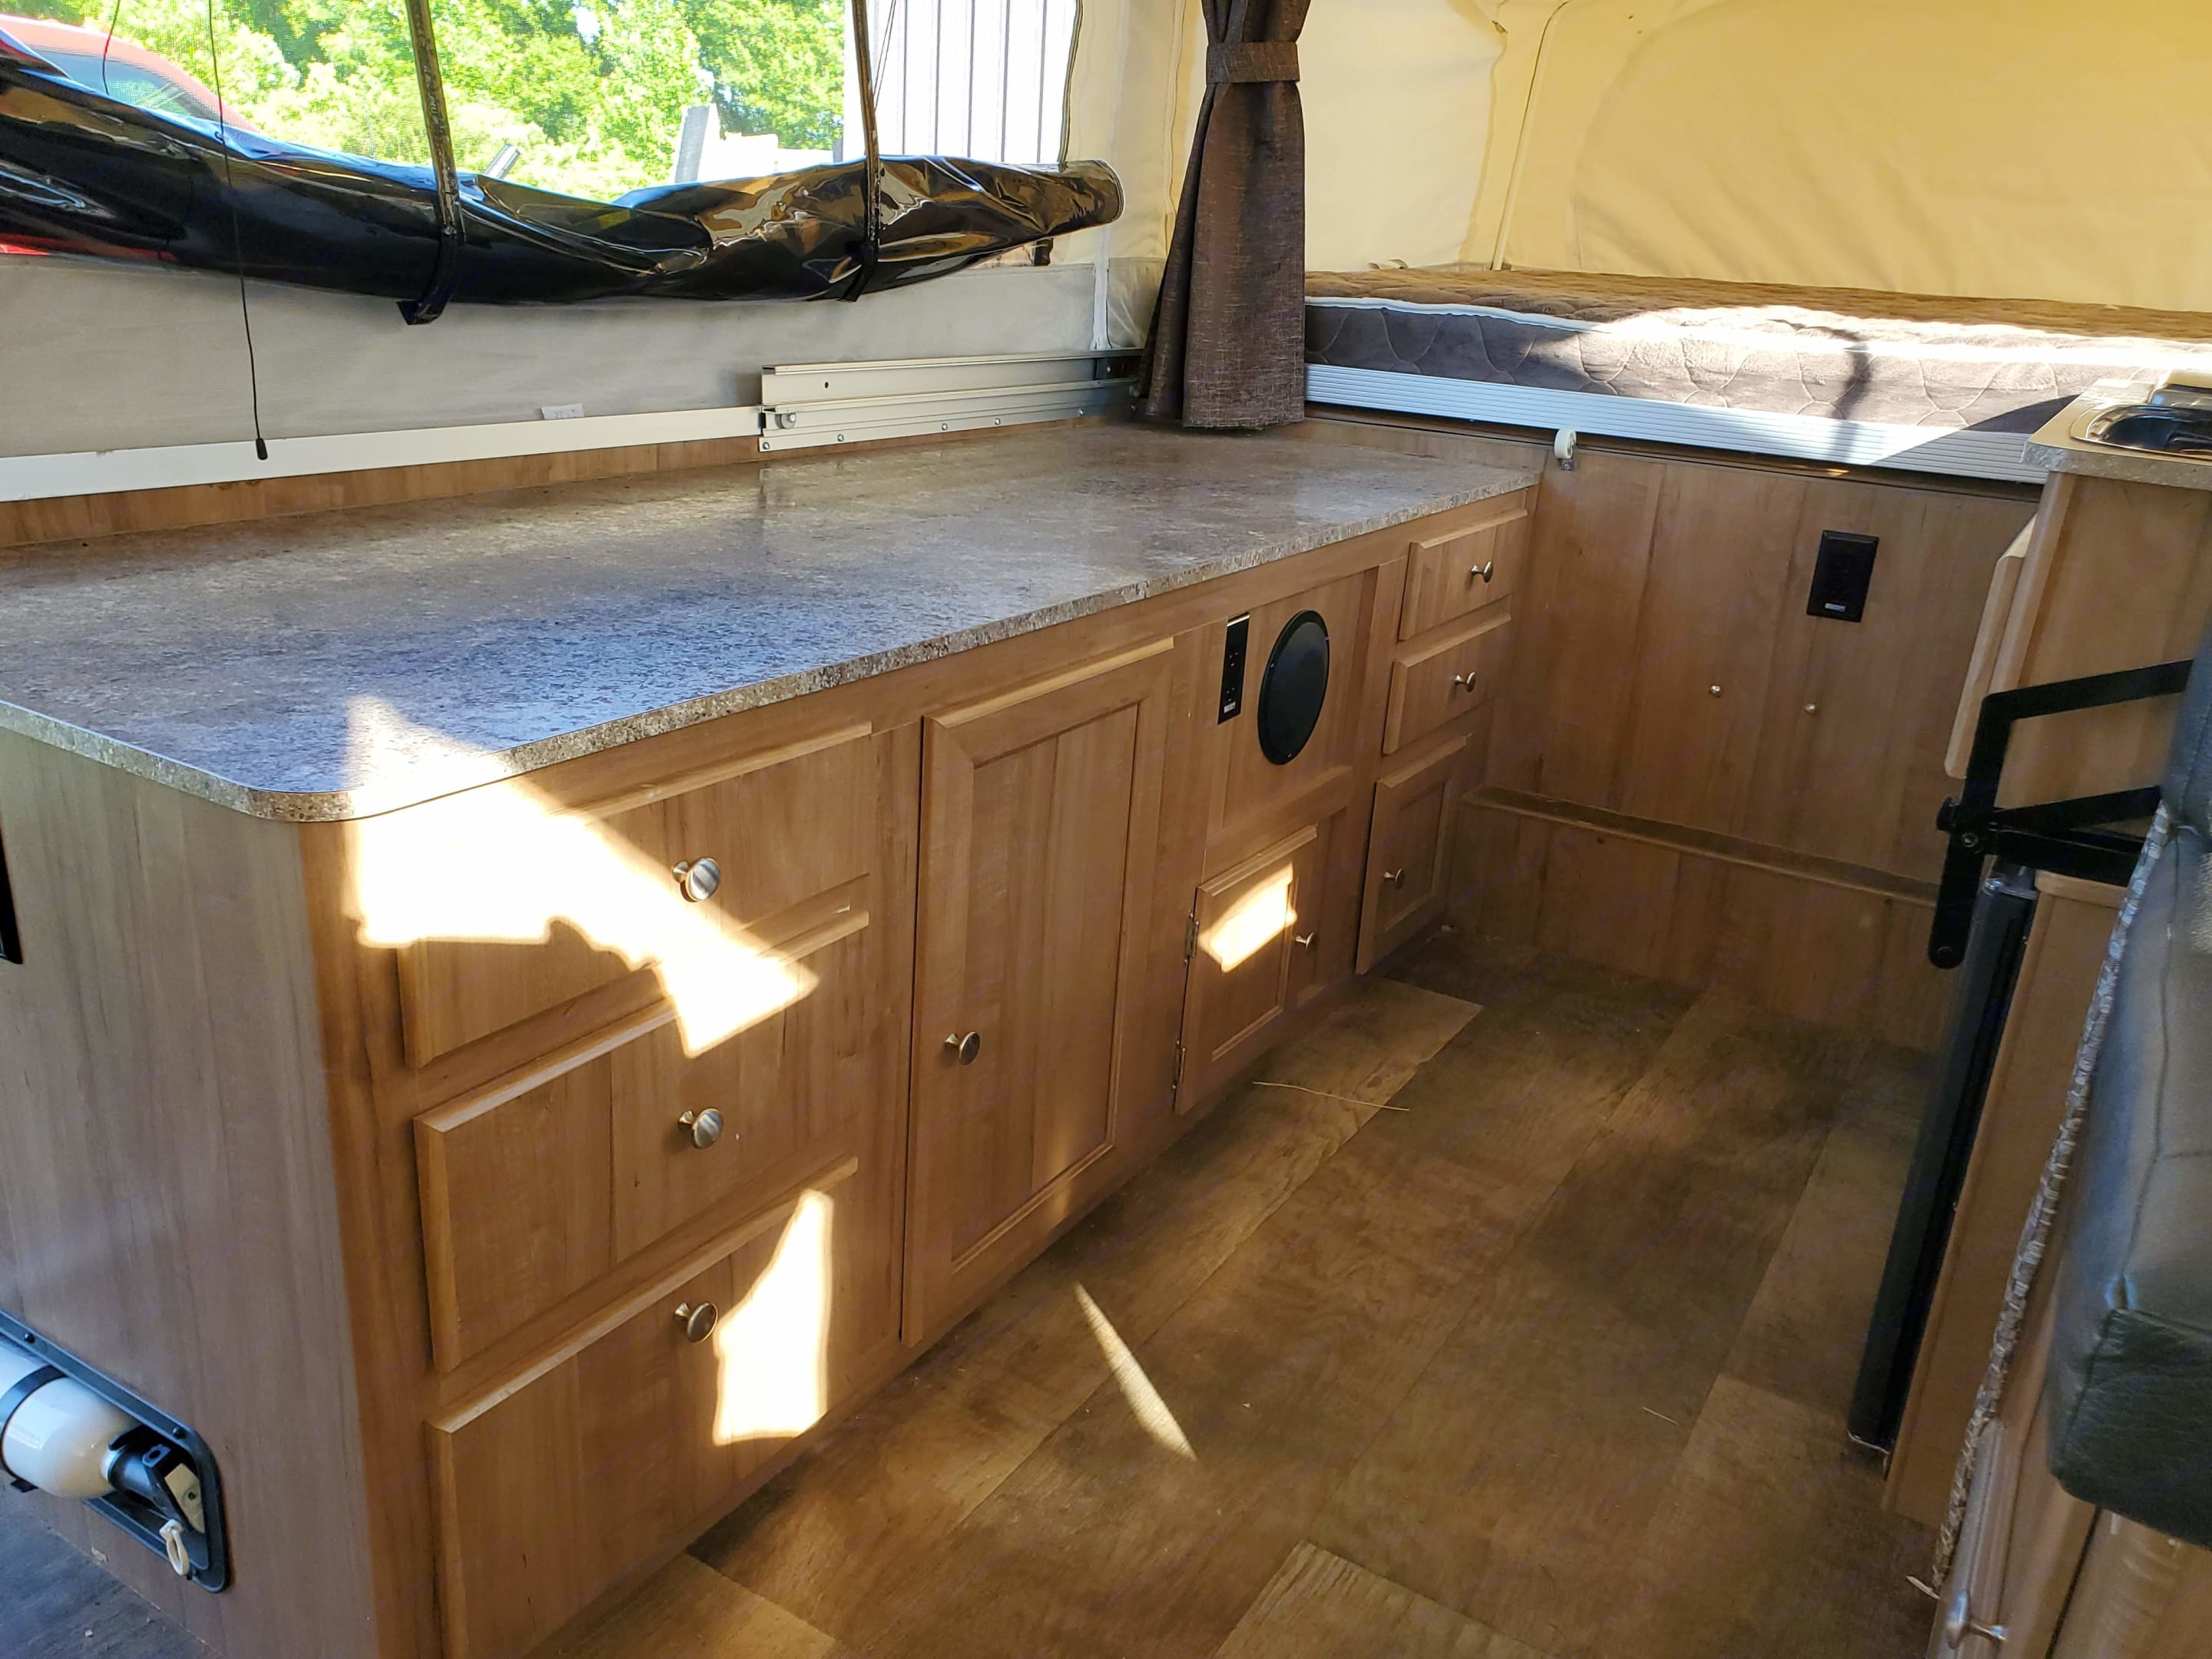 Plenty of storage and counter space. Forest River Rockwood Premier 2017